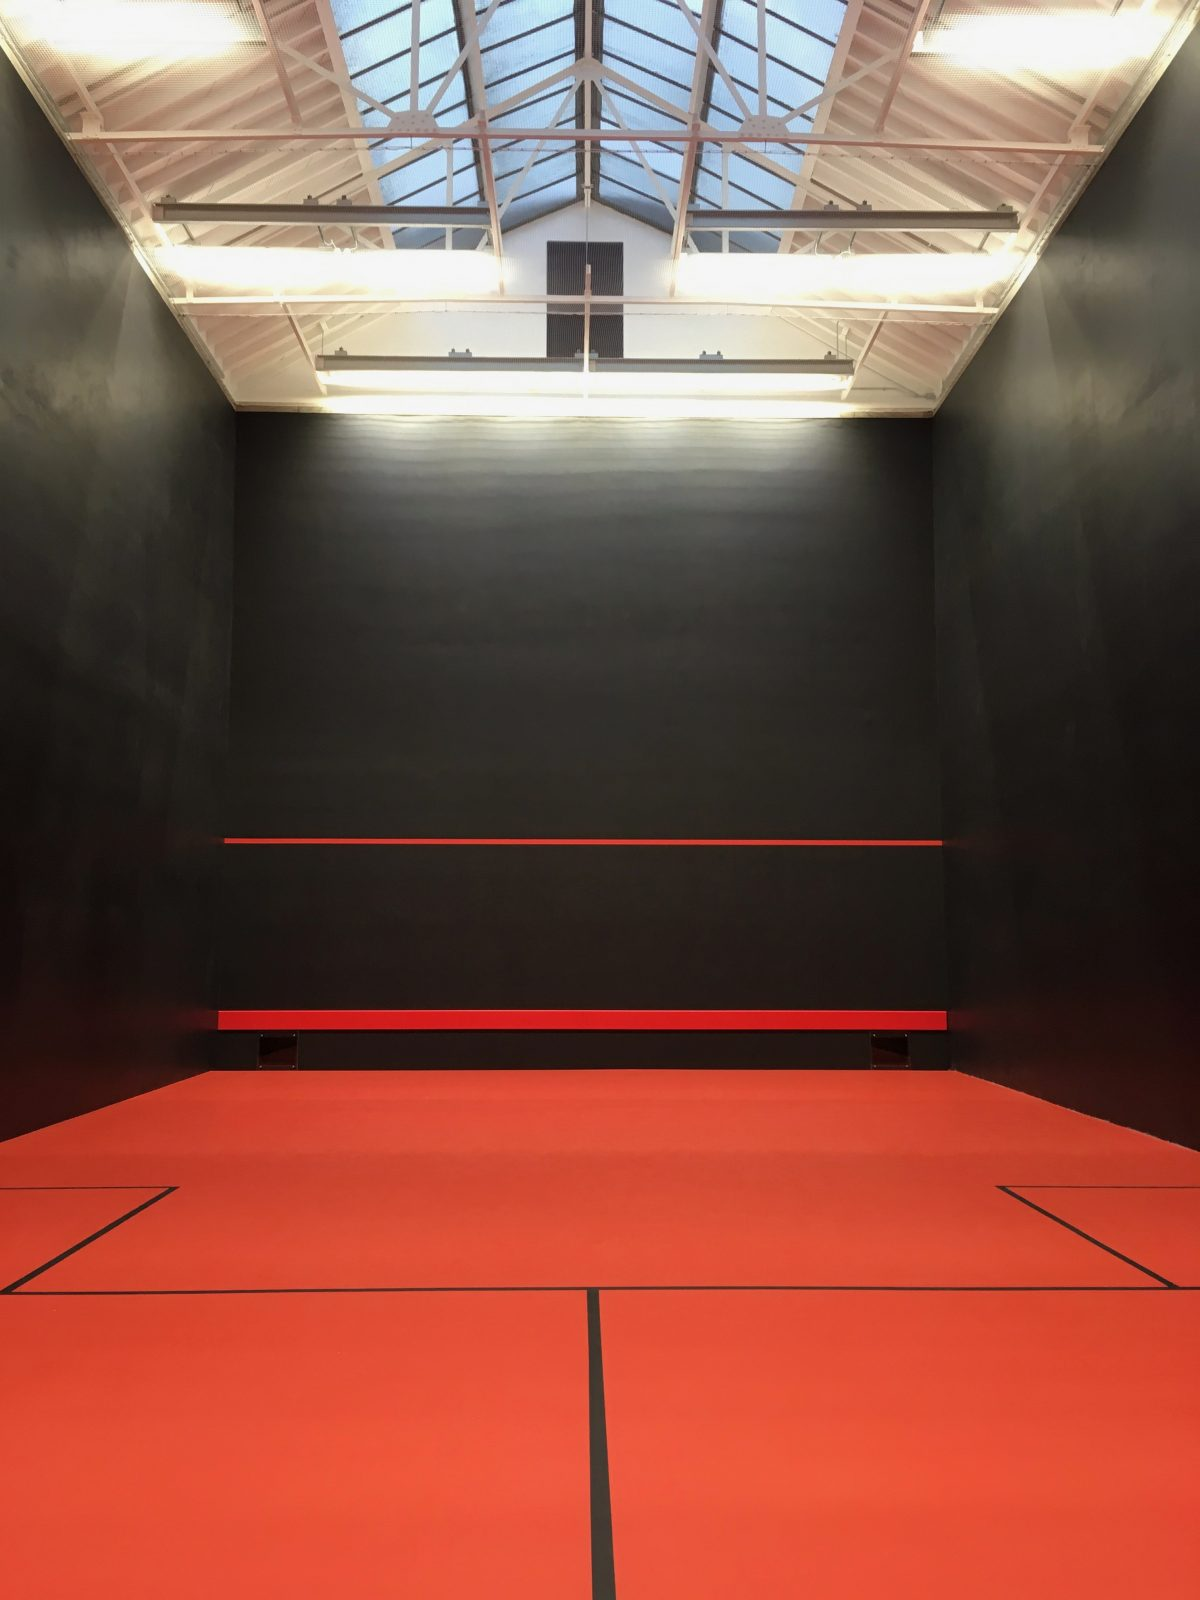 A rackets curt in London designed by Marcus Beale Architects